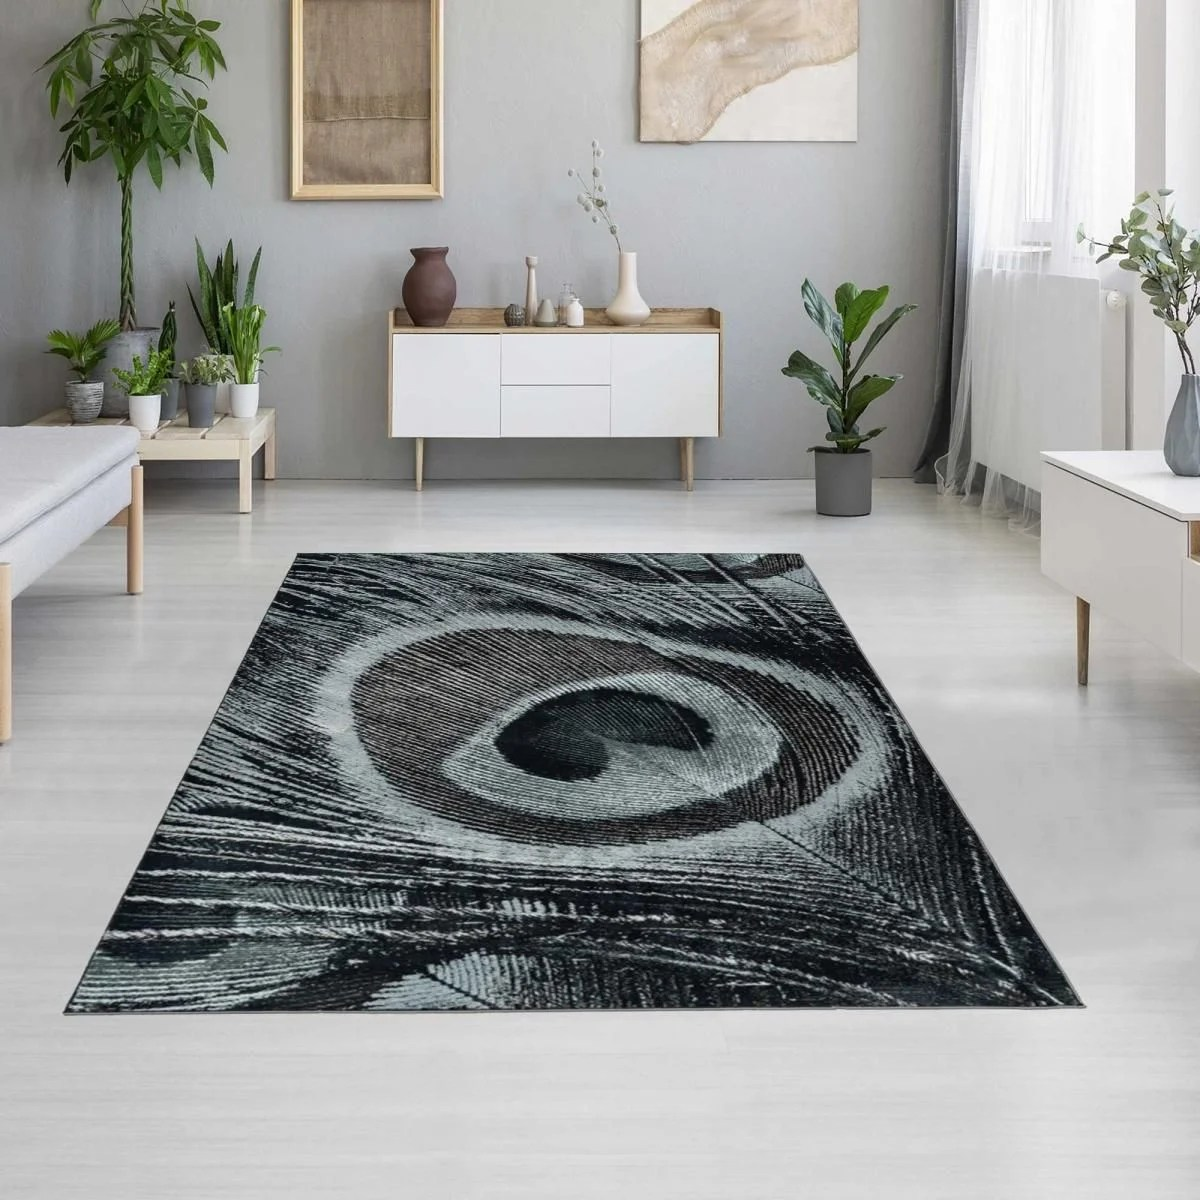 tapis design et moderne plastique recycle recyclable 1 ll